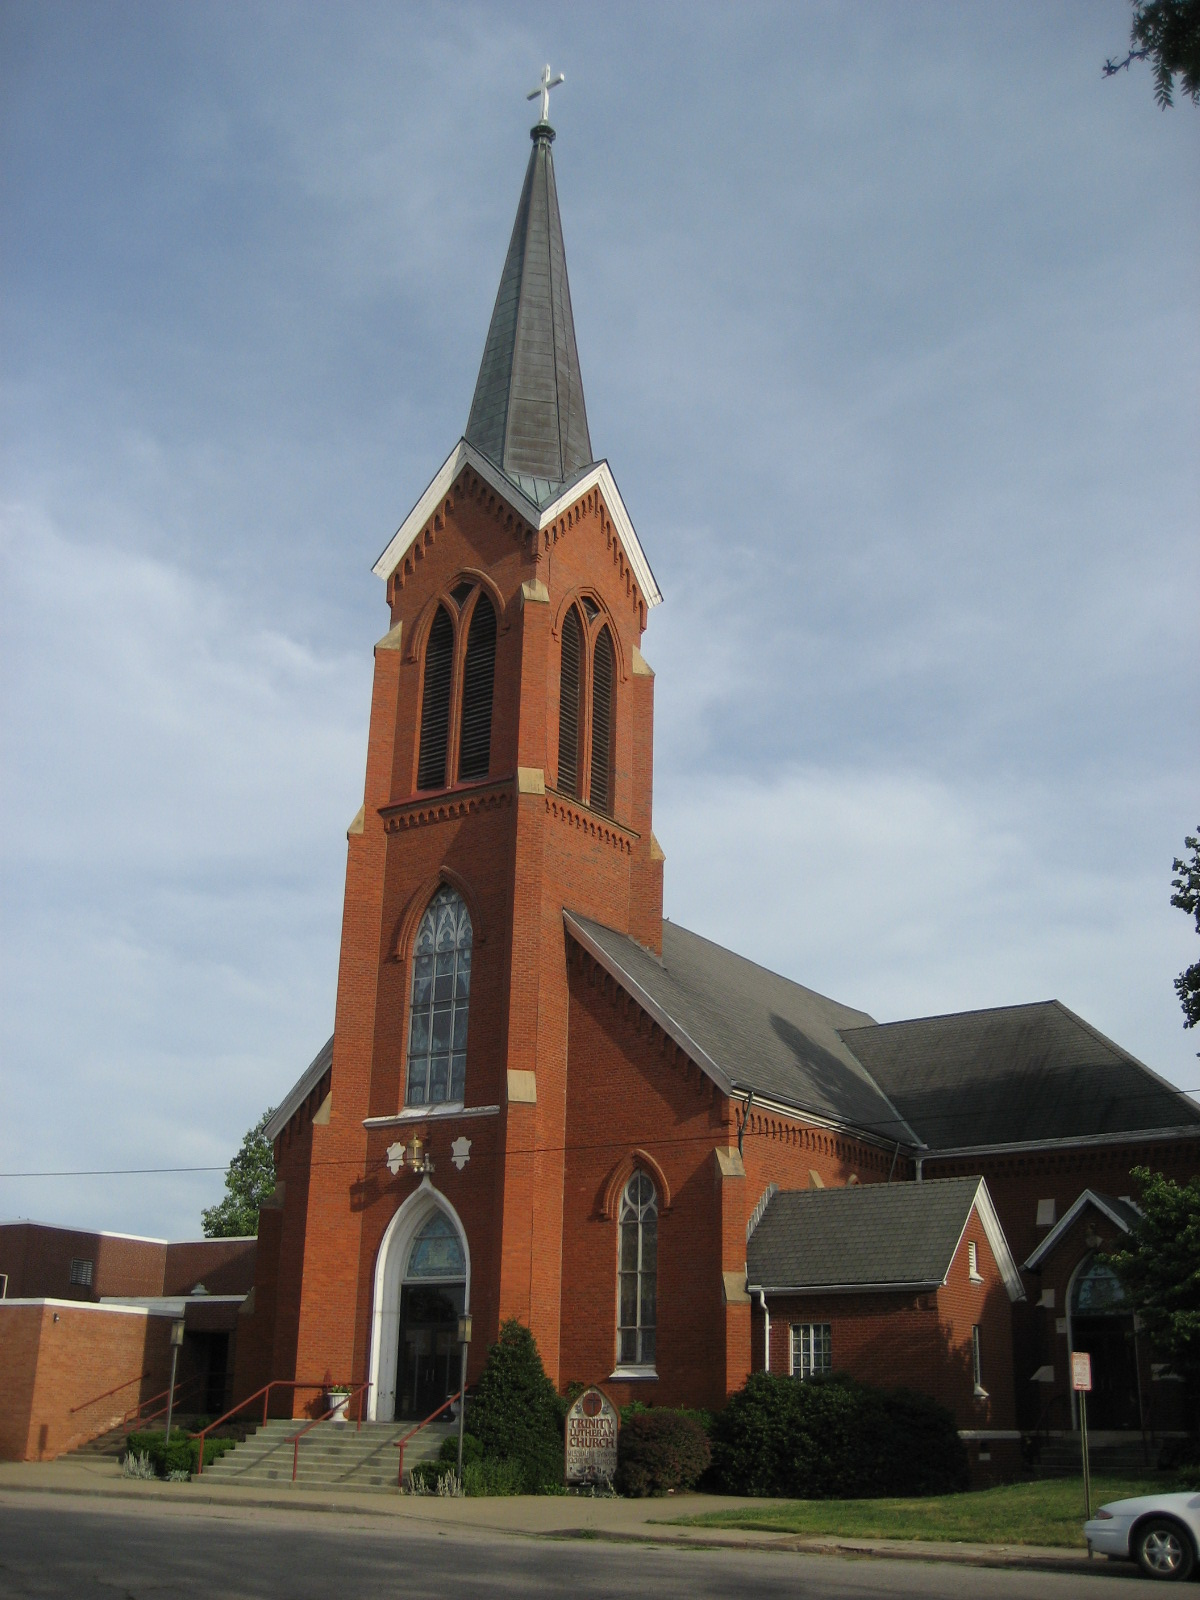 lutheran singles dating Lutheran dating for lutheran singles meet lutheran singles online now registration is 100% free.